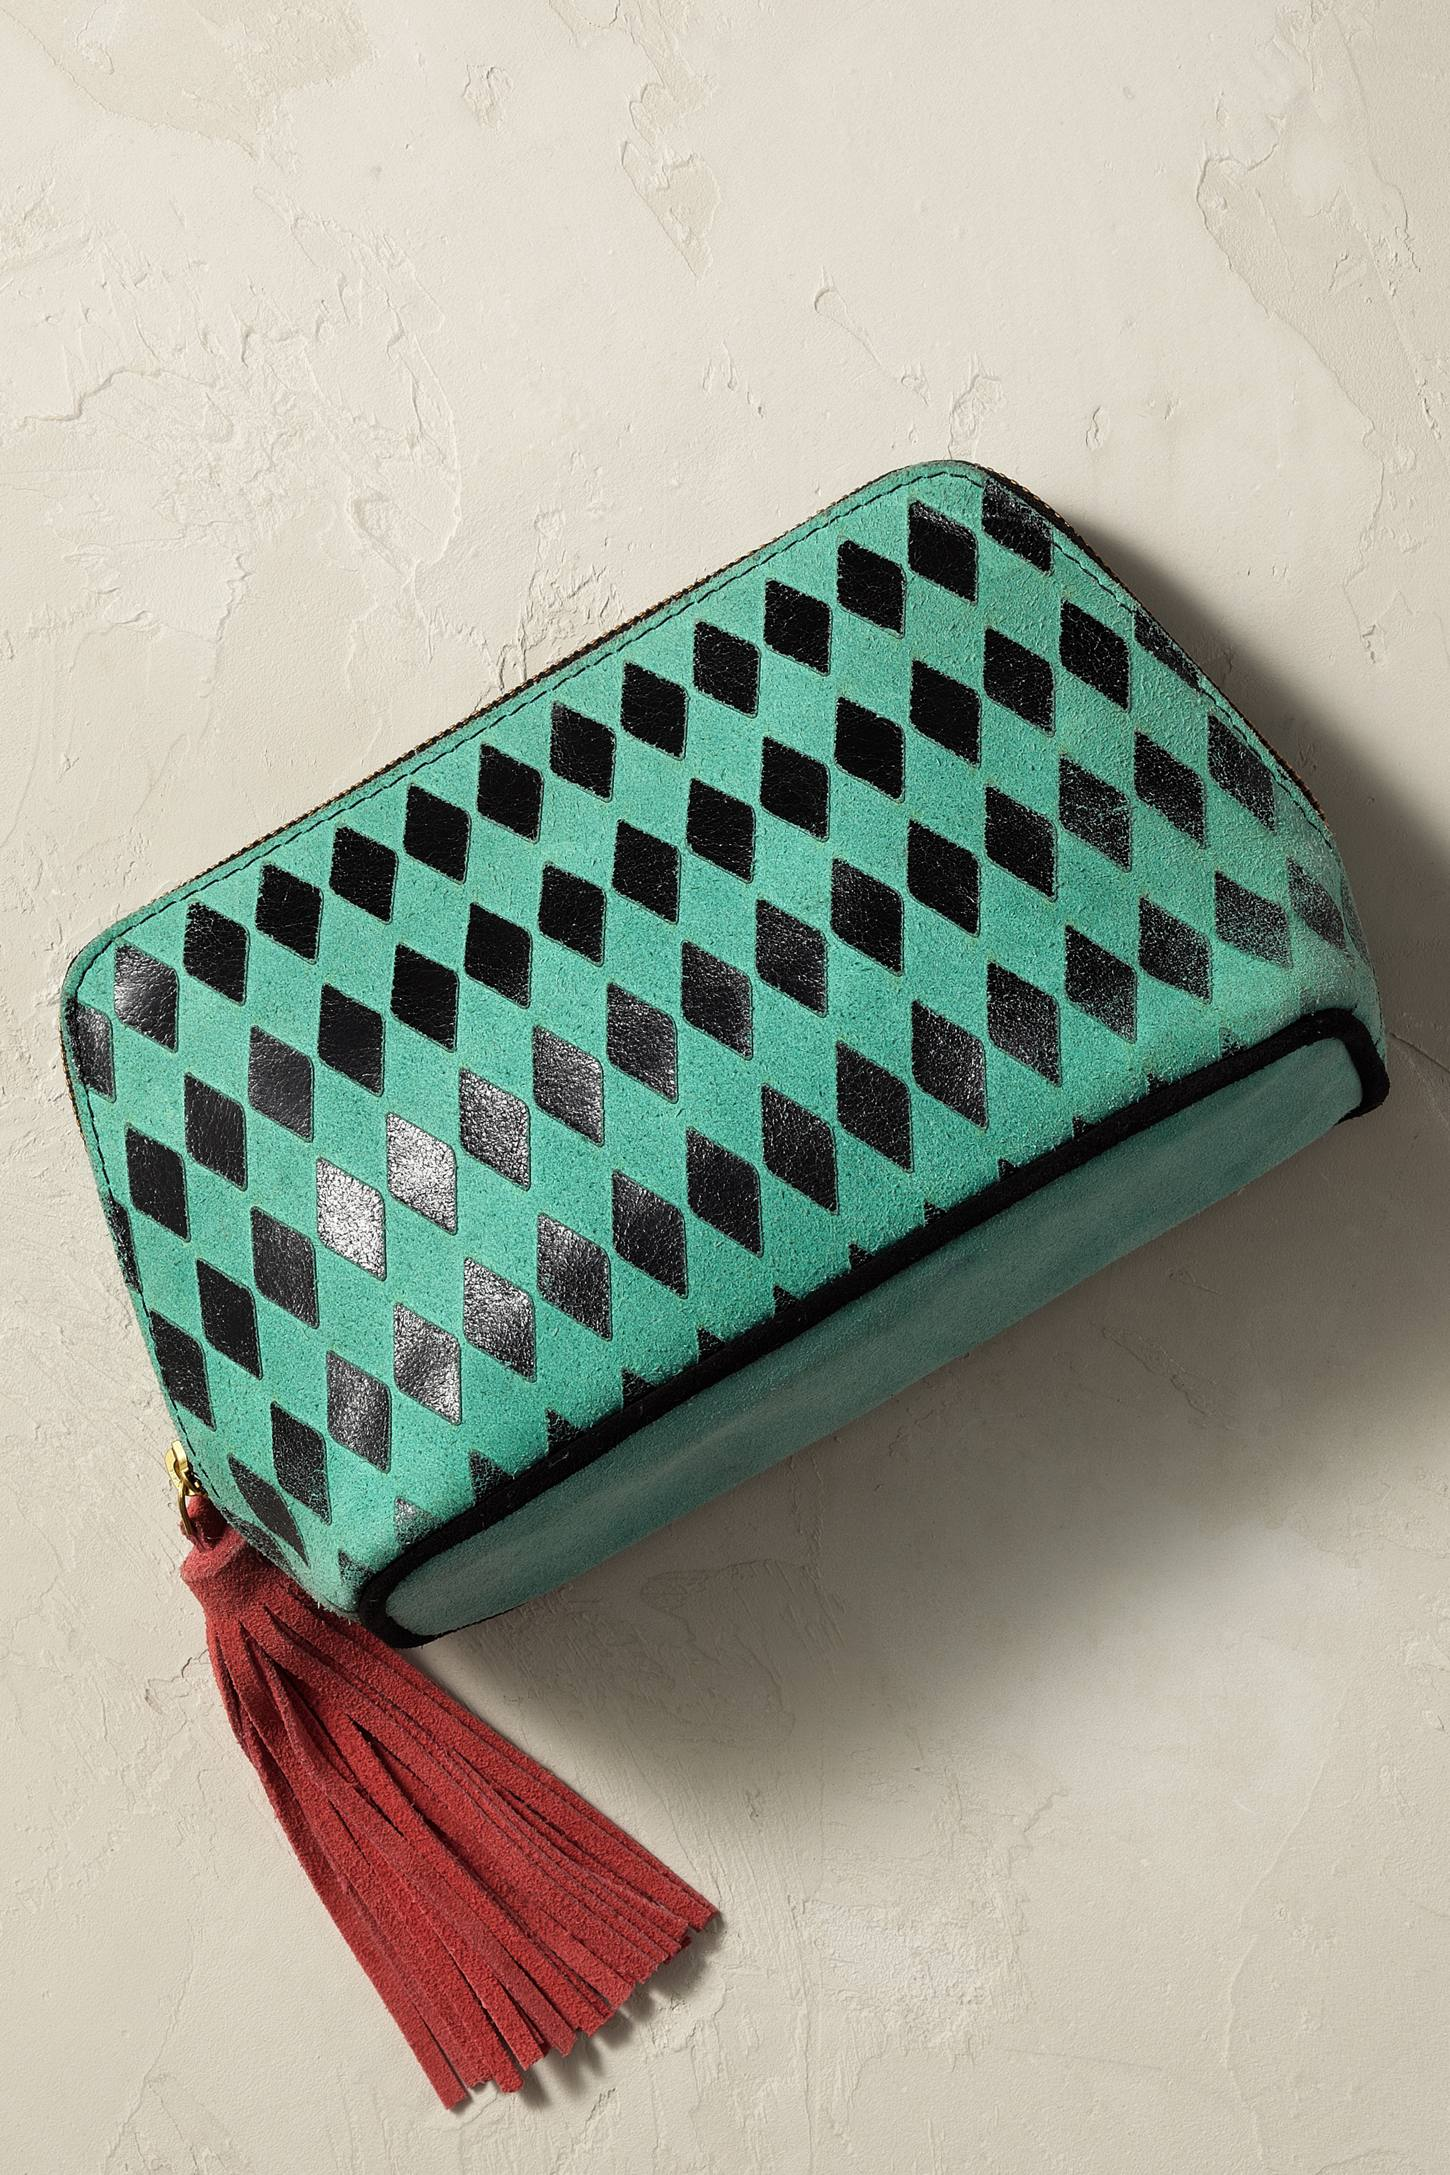 Chequered Diamonds Cosmetic Case